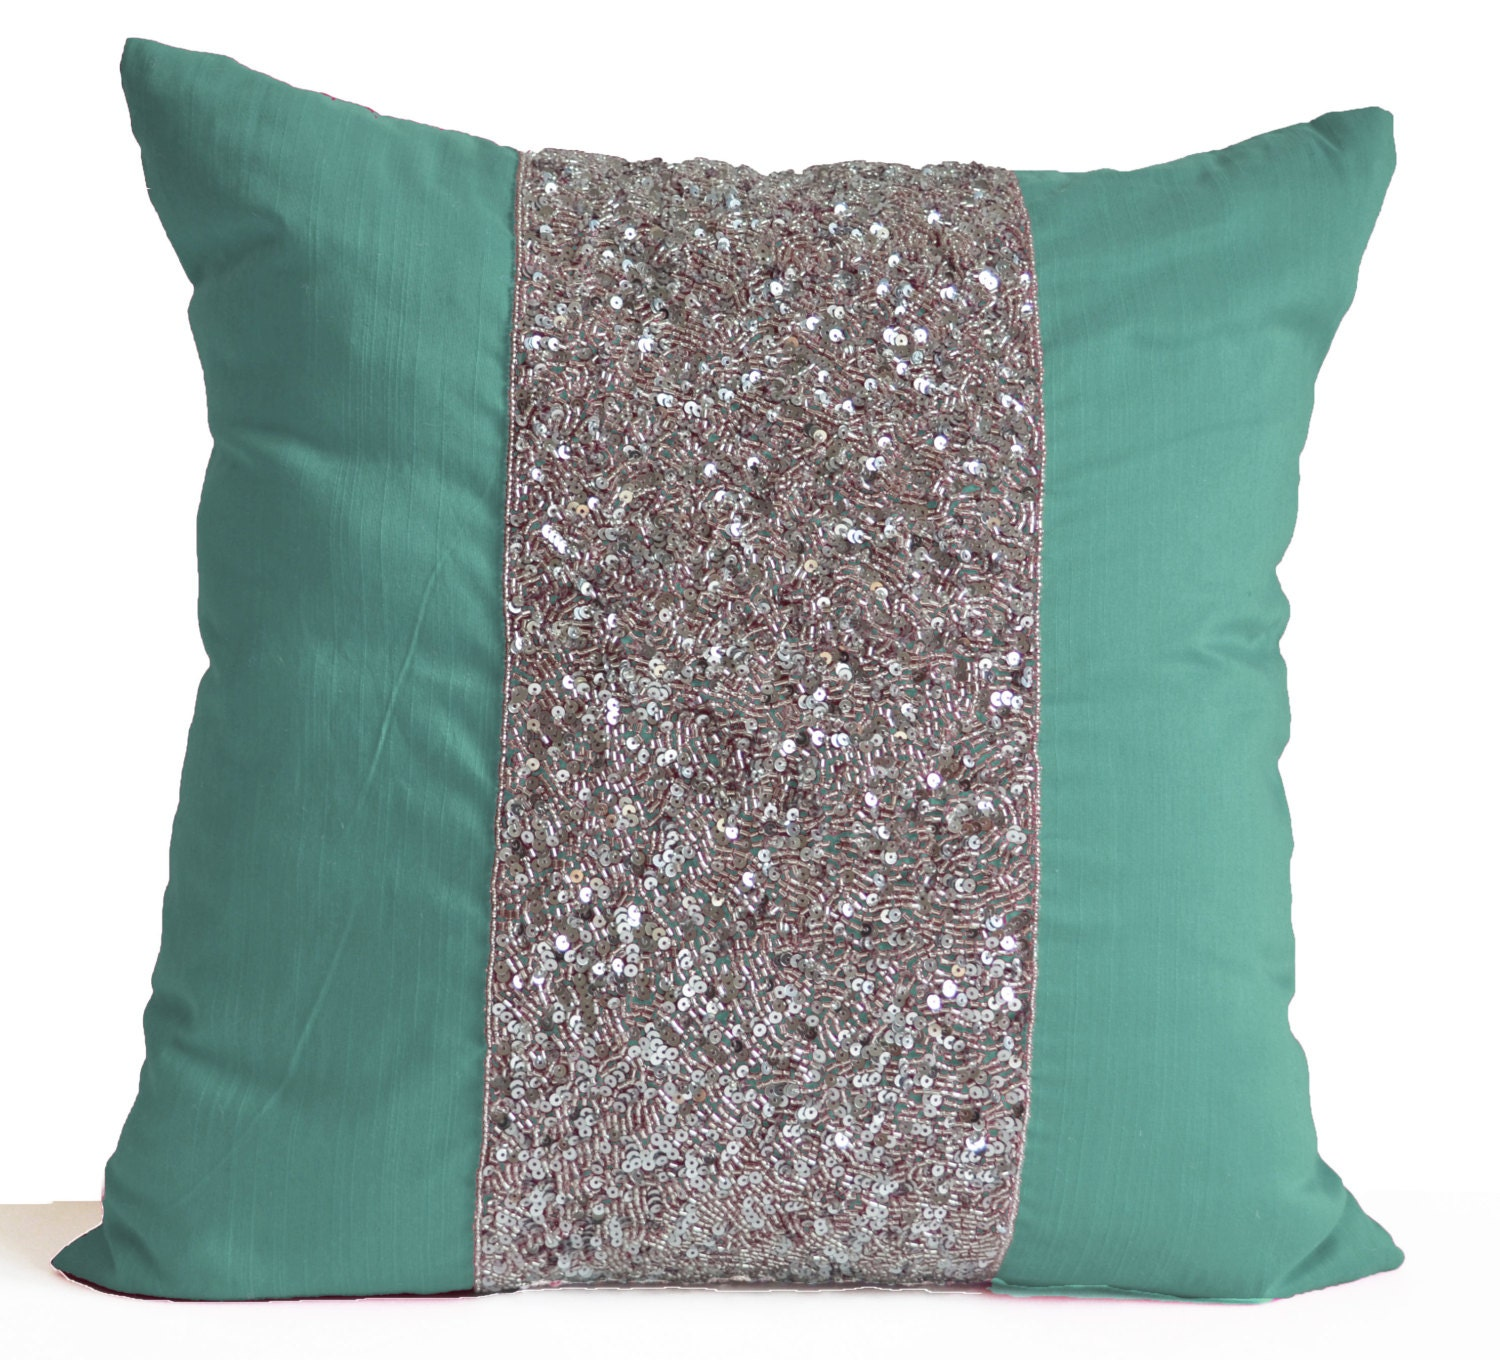 Decorative Pillows With Teal : Teal Decorative Pillow Cushion Cover Teal Pillow Silver Sequin